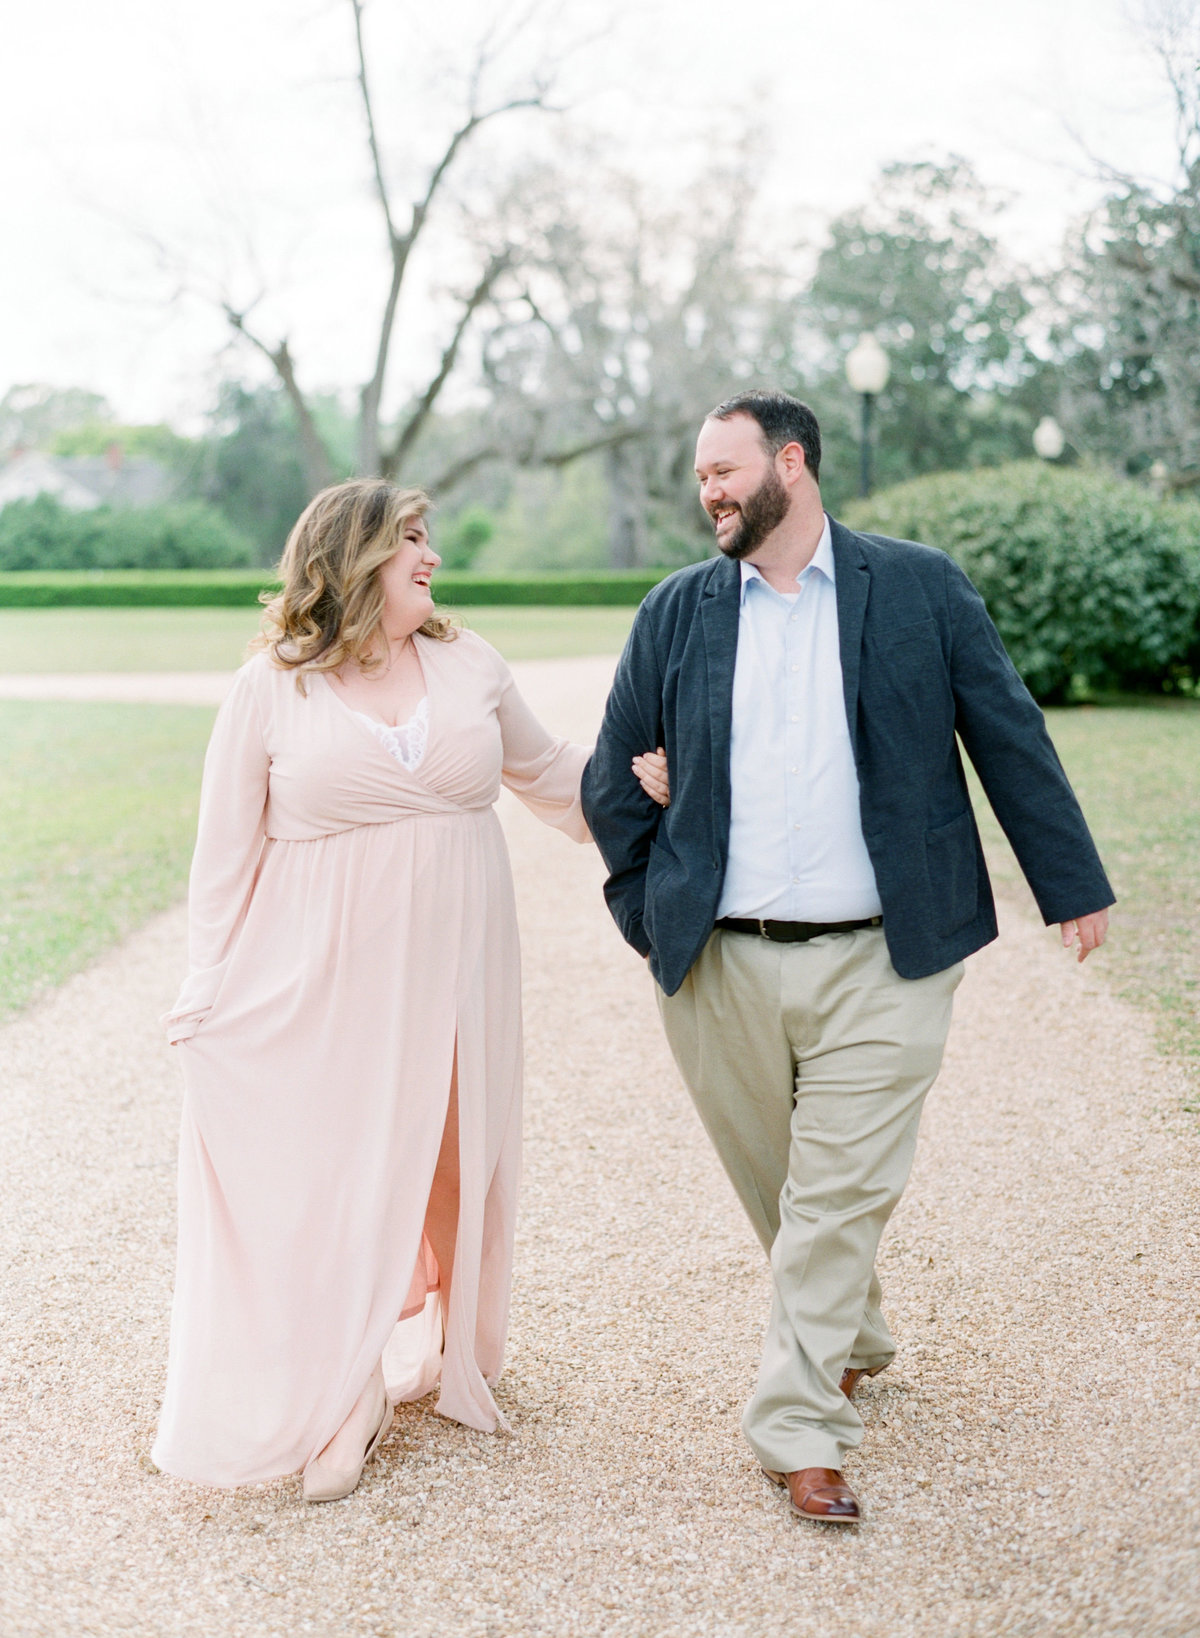 CourtneyWoodhamPhoto-7